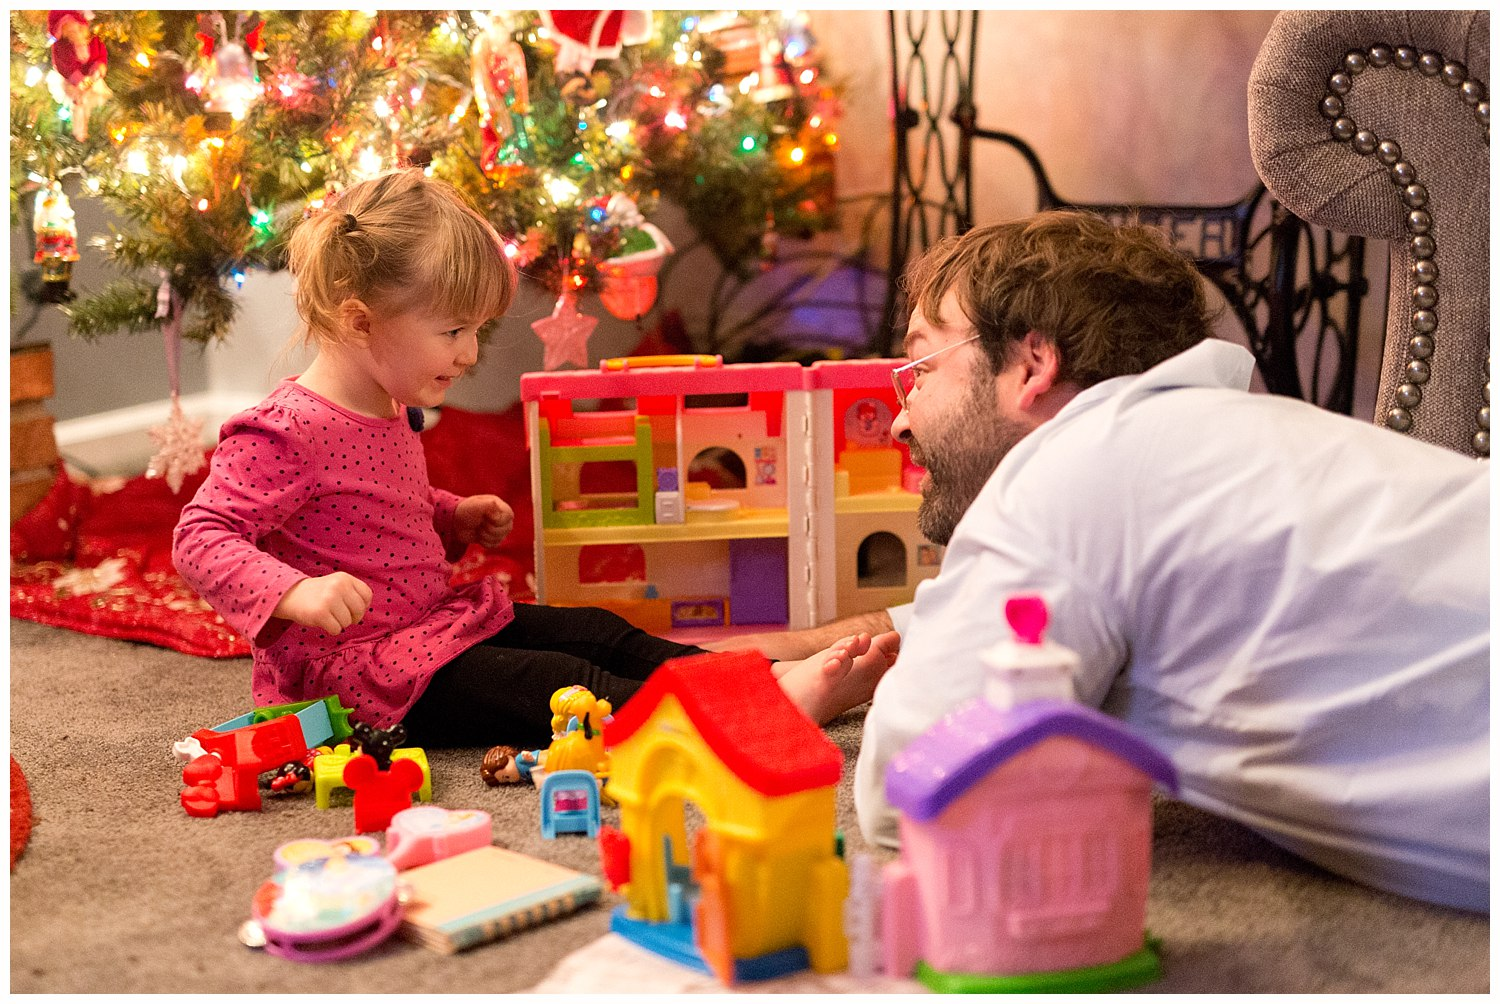 daddy and daughter playing under Christmas tree